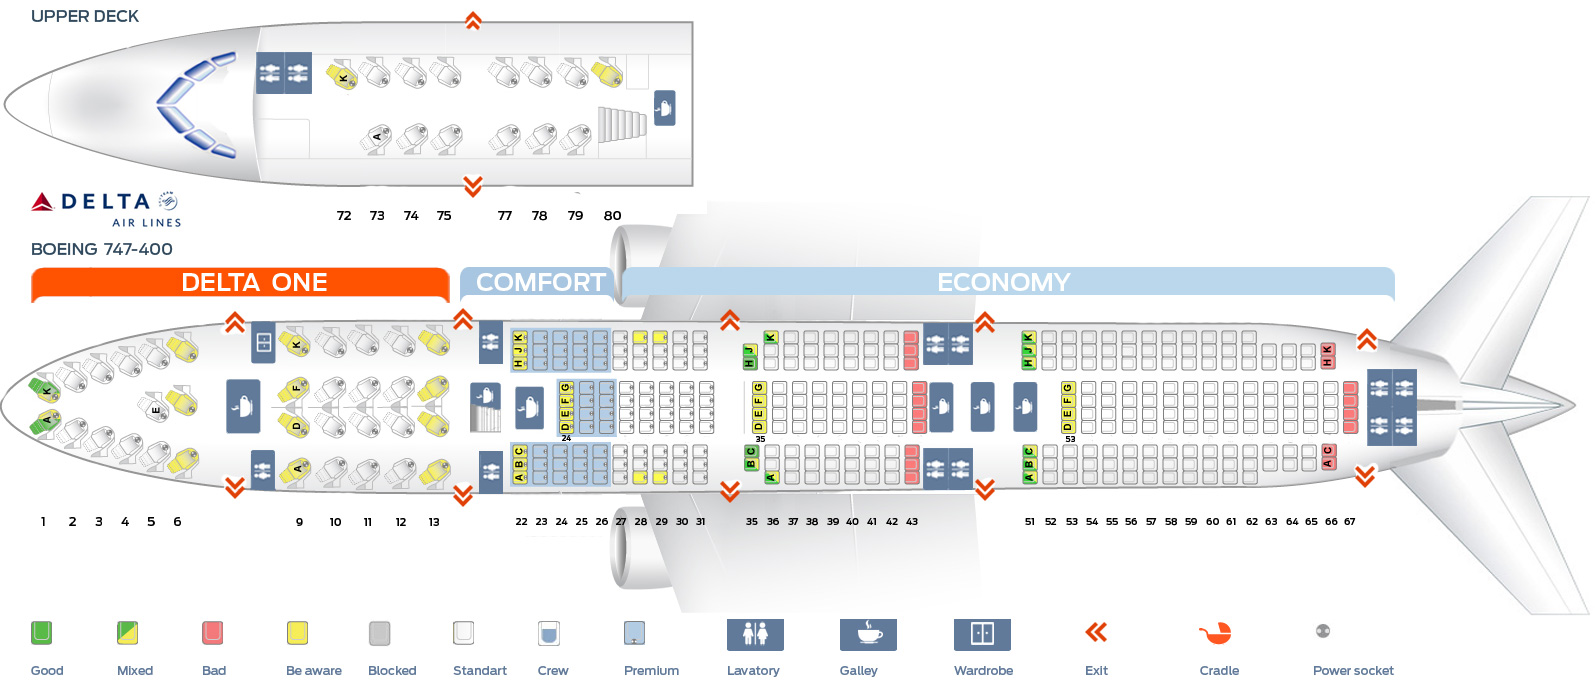 seat map boeing 747 400 delta airlines best seats in plane